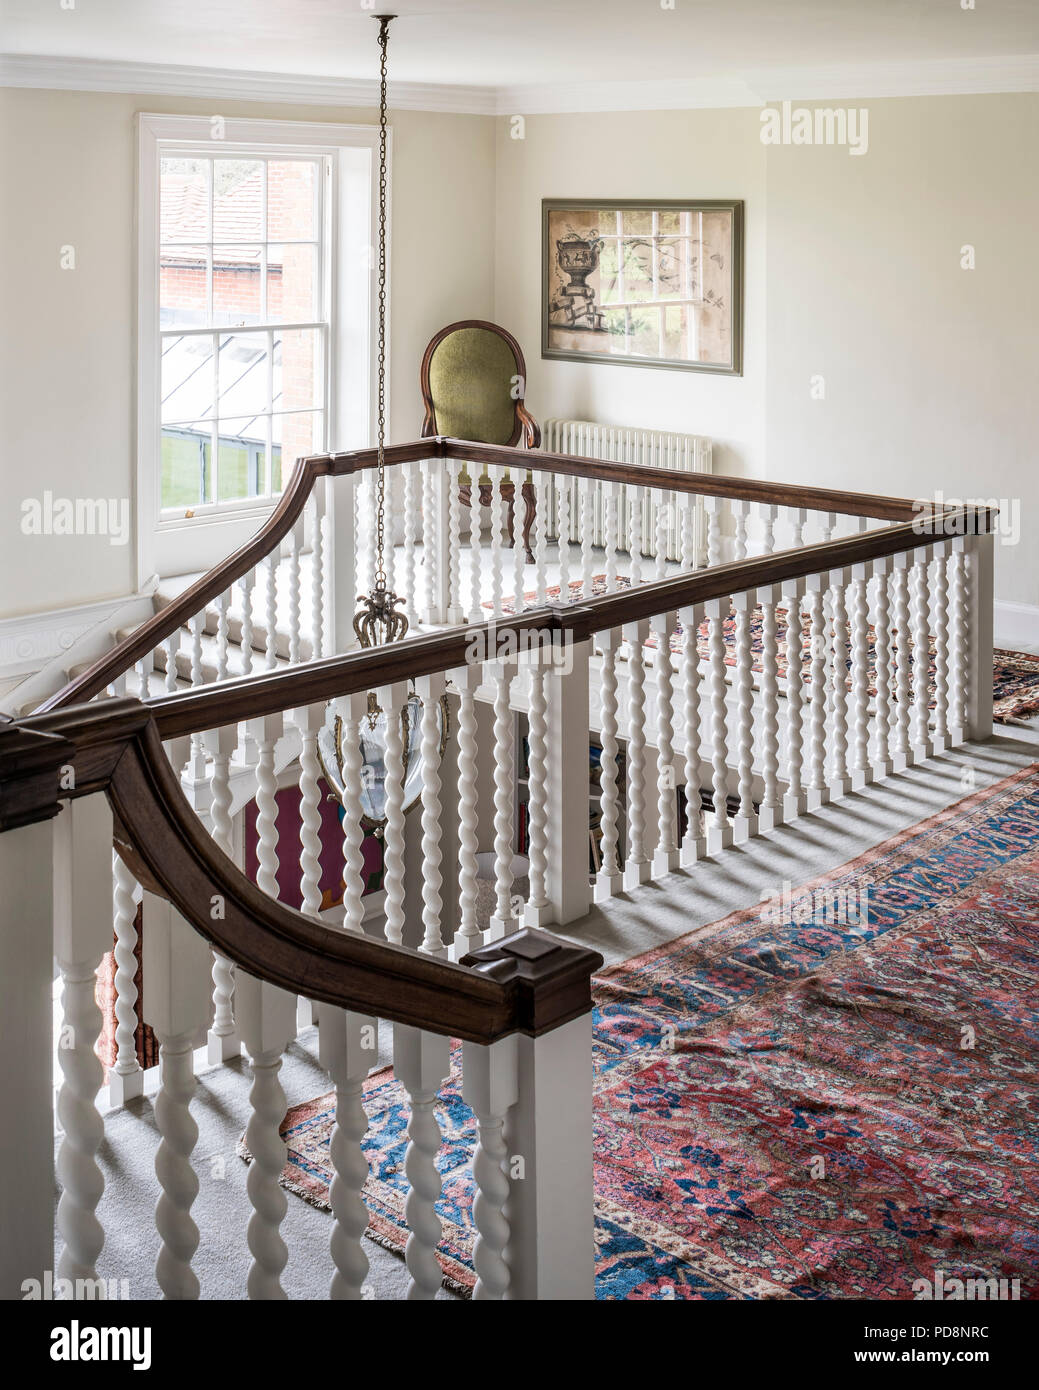 Wooden handrail and chair in wide staircase landing - Stock Image